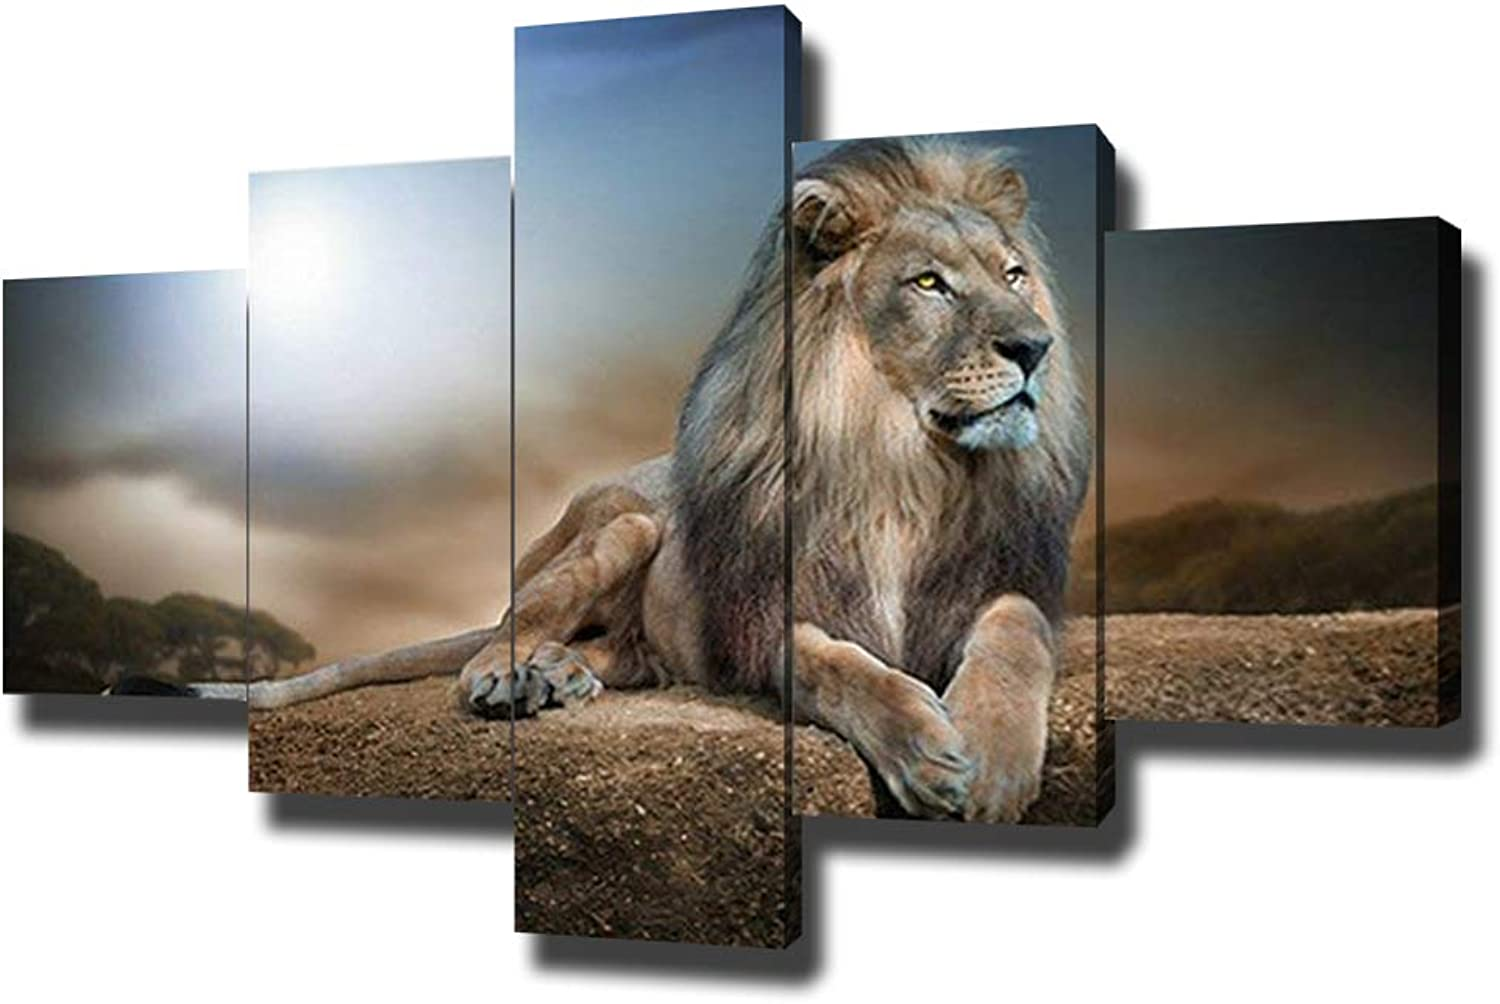 SwmArt 5 Piece Wall Art Painting A Kingly Lion Lying On The Rock Picture On Canvas for Living Room Decor Or As A Gift(50  W x 28  H, Framed)